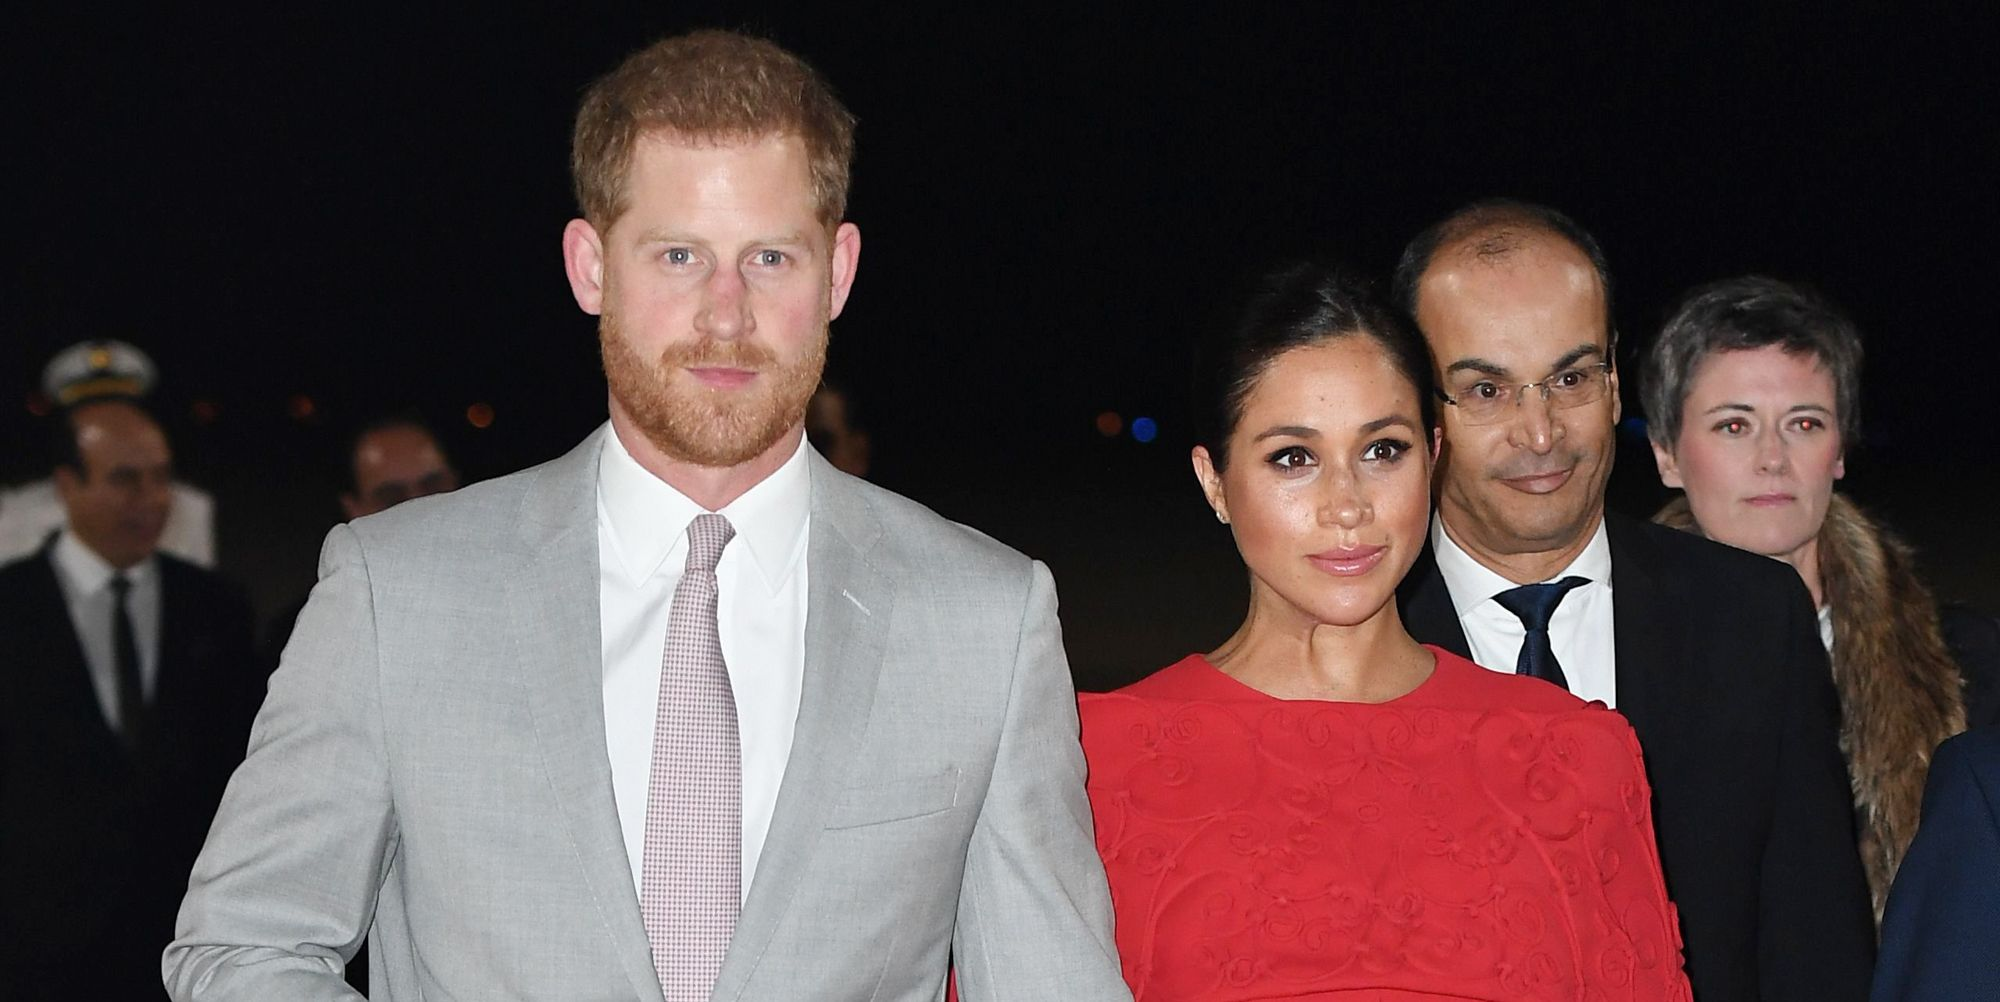 Did Buckingham Palace accidentally reveal the name of Meghan and Harry's baby?